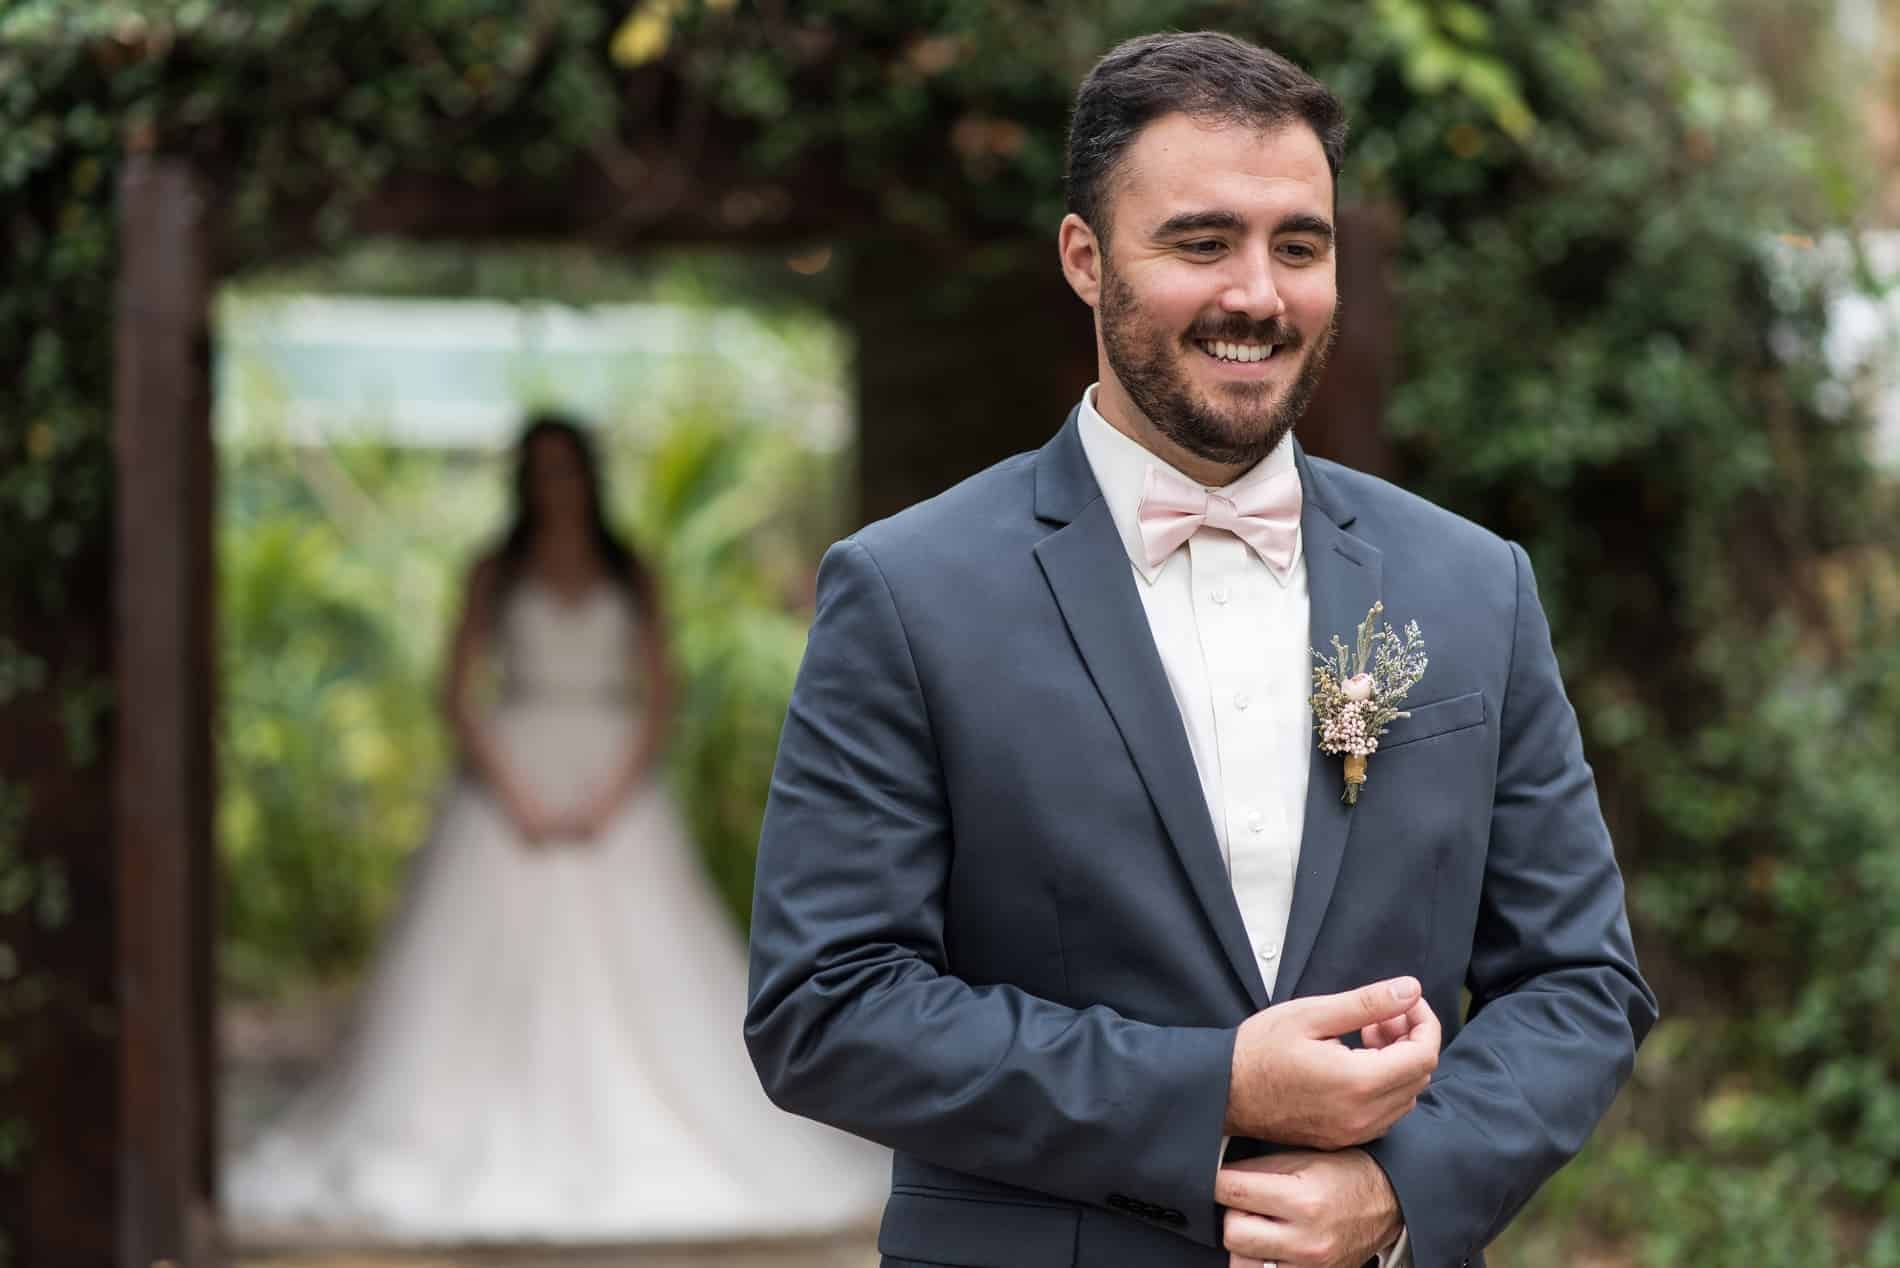 Bride and Groom enjoy their First Look at Harmony Gardens